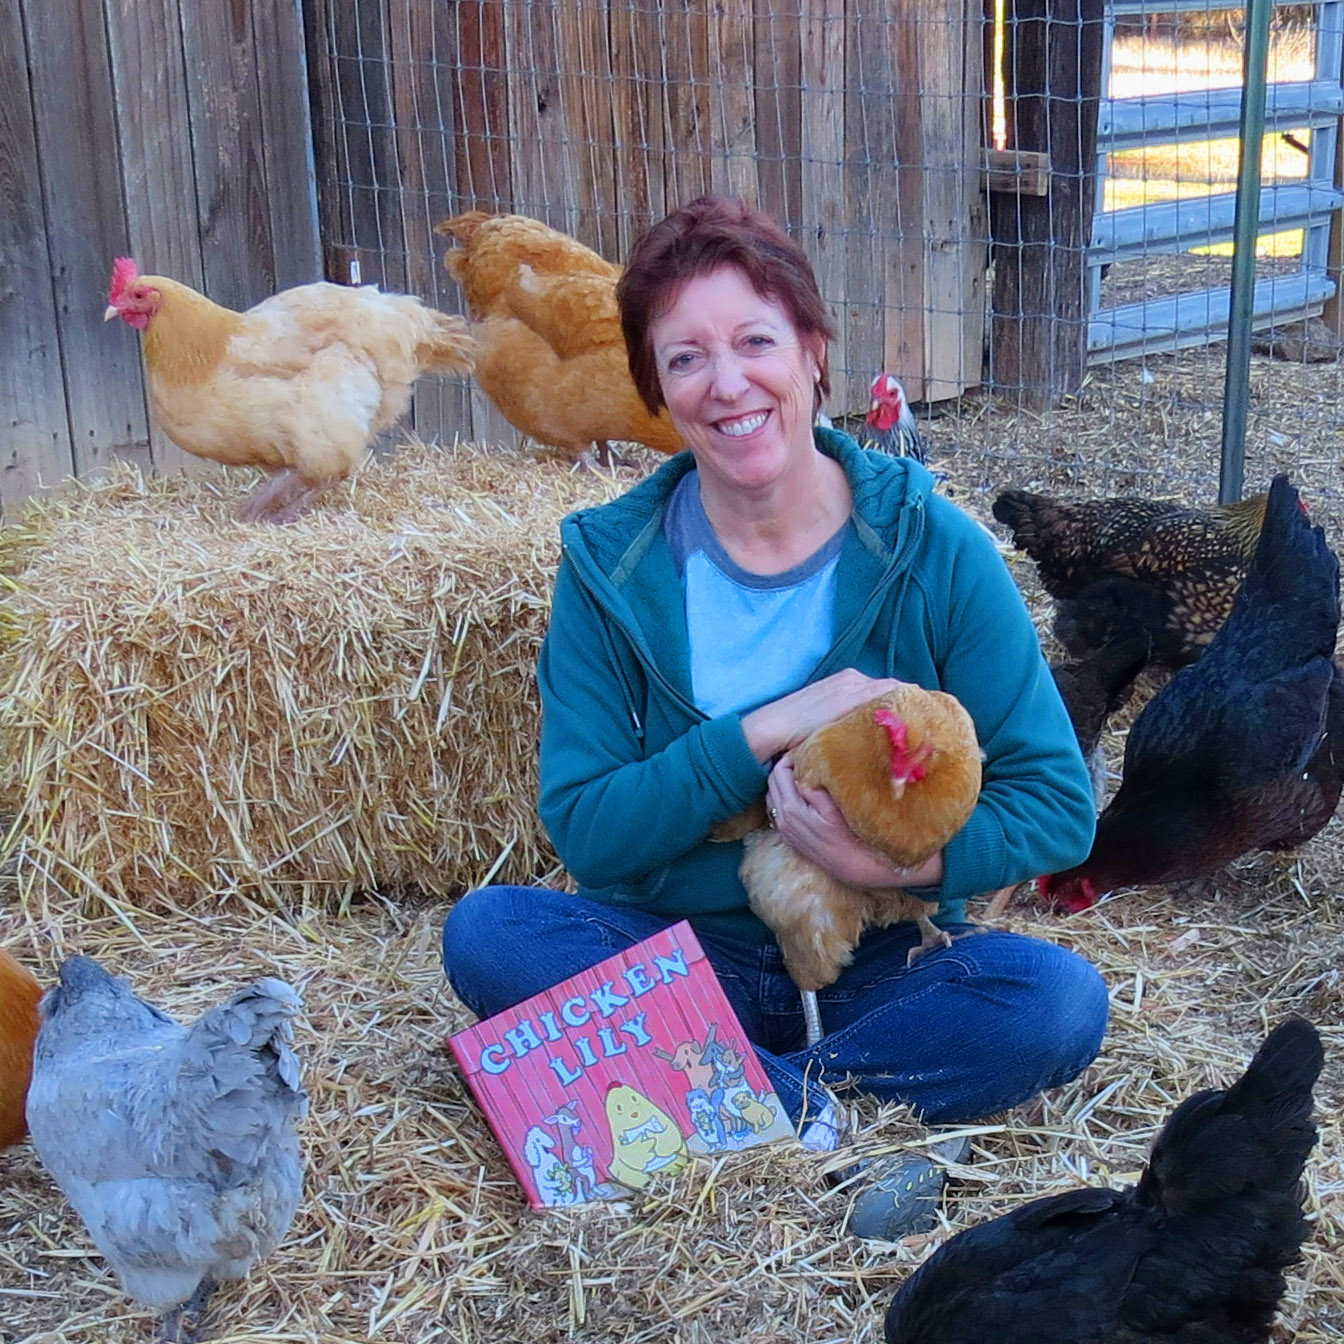 Children's Book Author Lori Mortensen